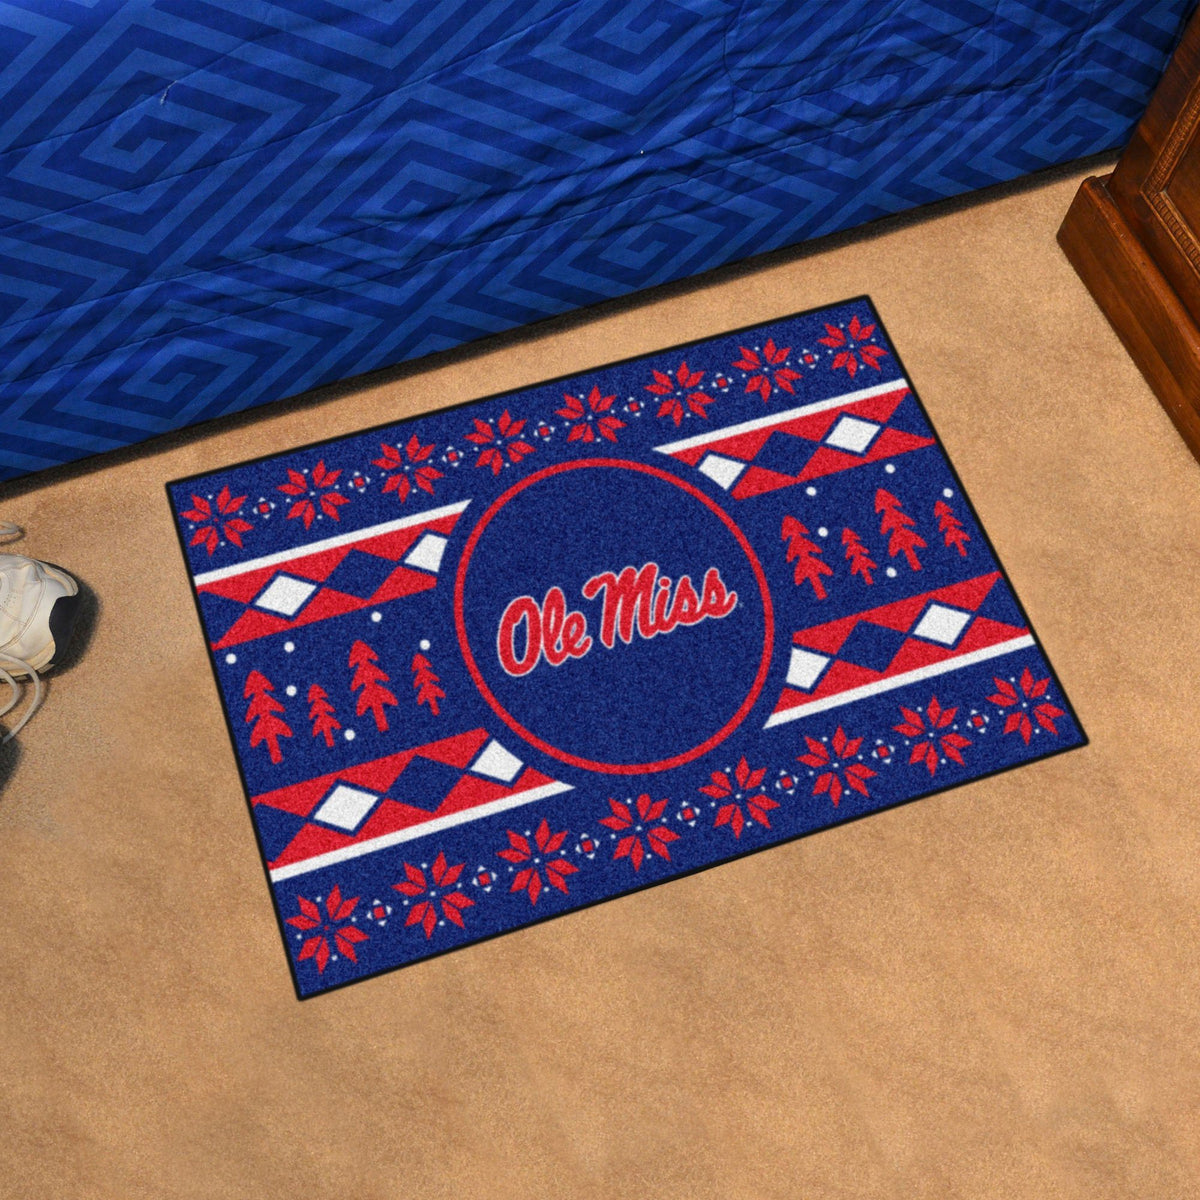 Collegiate - Holiday Sweater Starter Mat Collegiate Mats, Rectangular Mats, Holiday Sweater Starter Mat, Collegiate, Home Fan Mats Ole Miss